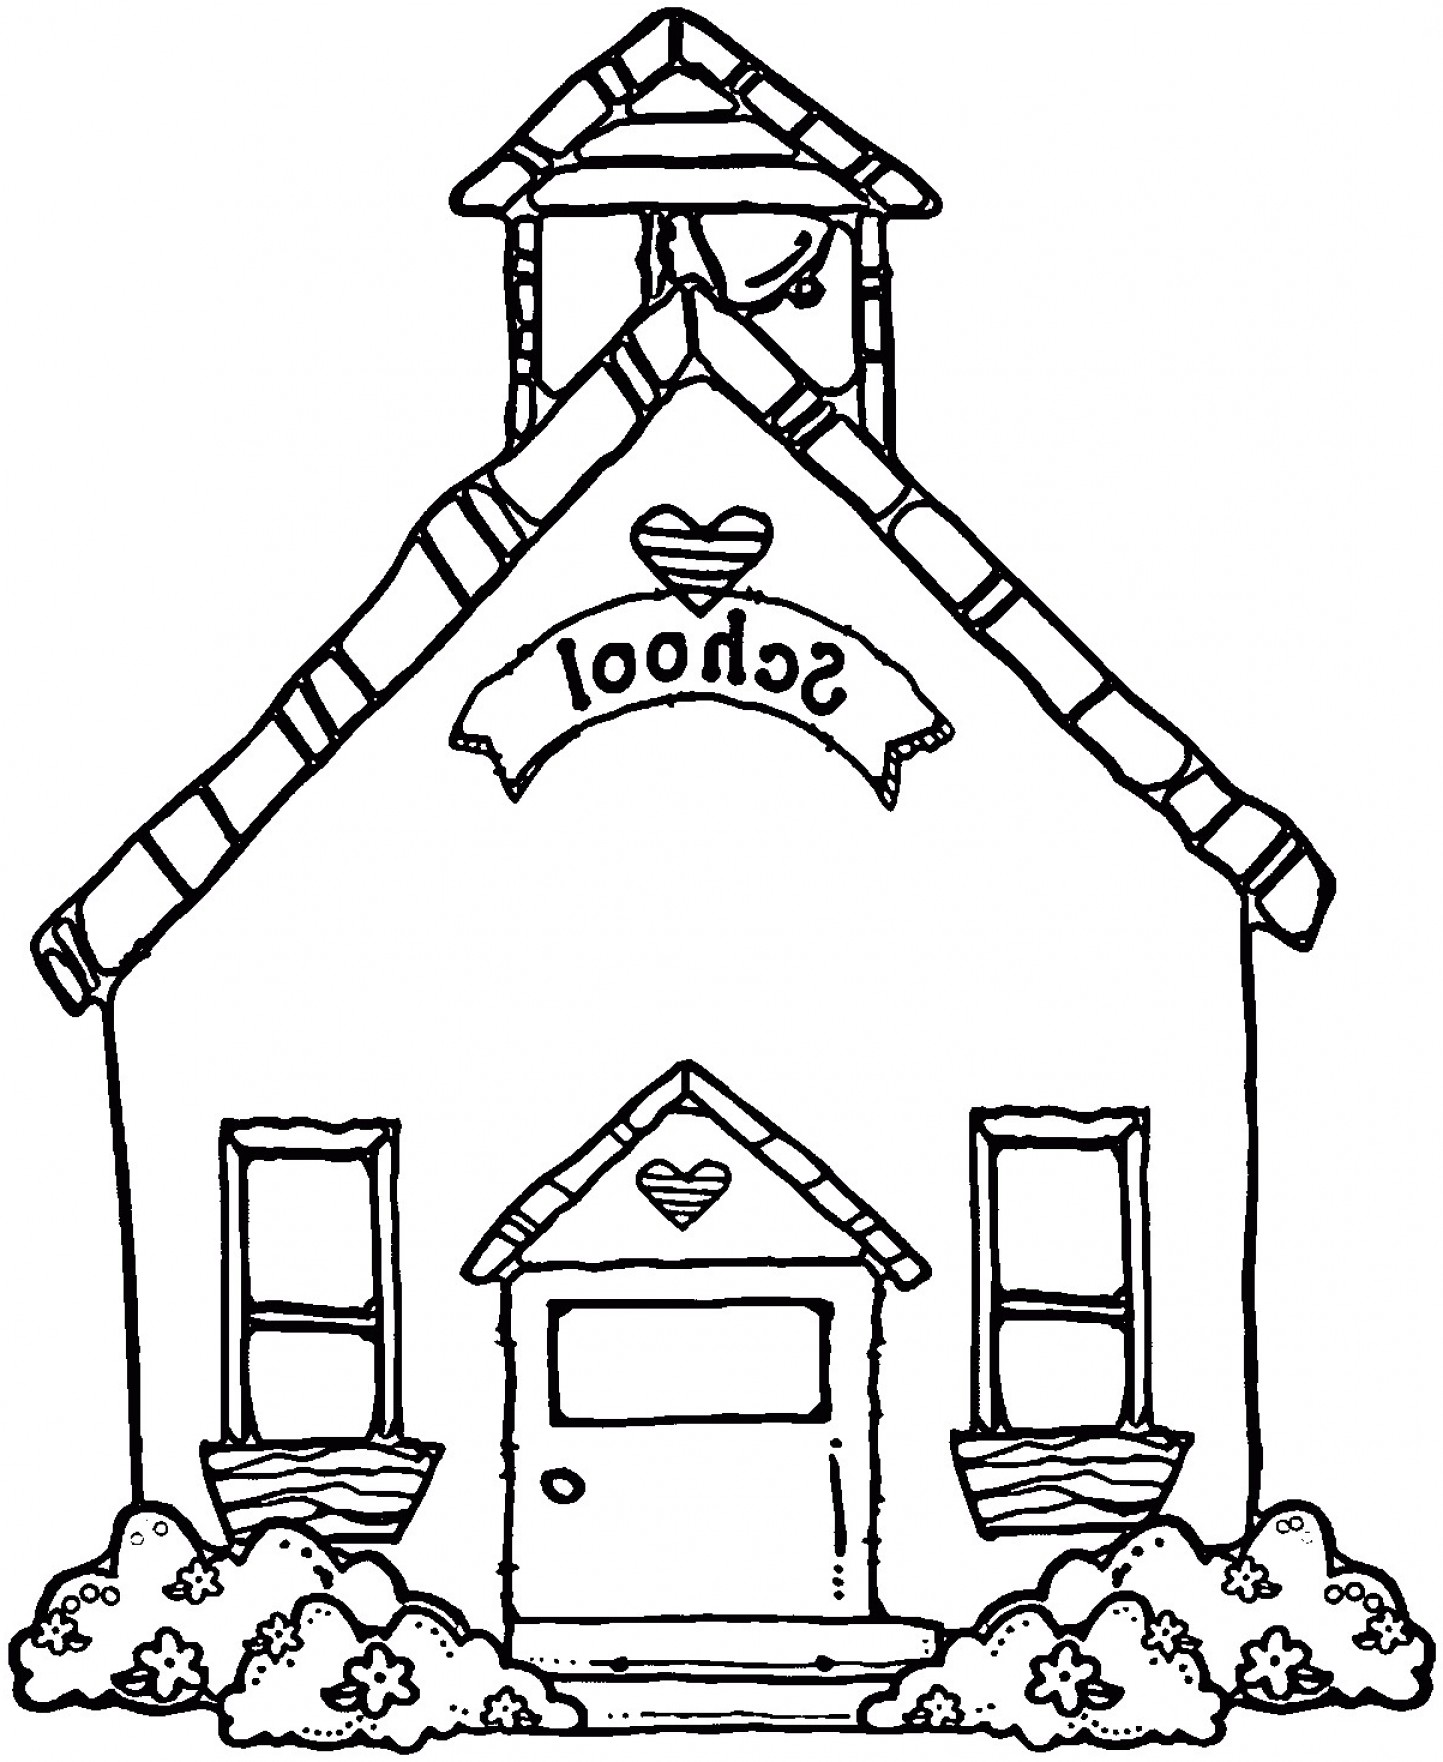 Vector Clip Art Red Schoolhouse: School House Coloring Page Cute Schoolhouse Free Clip Clipart